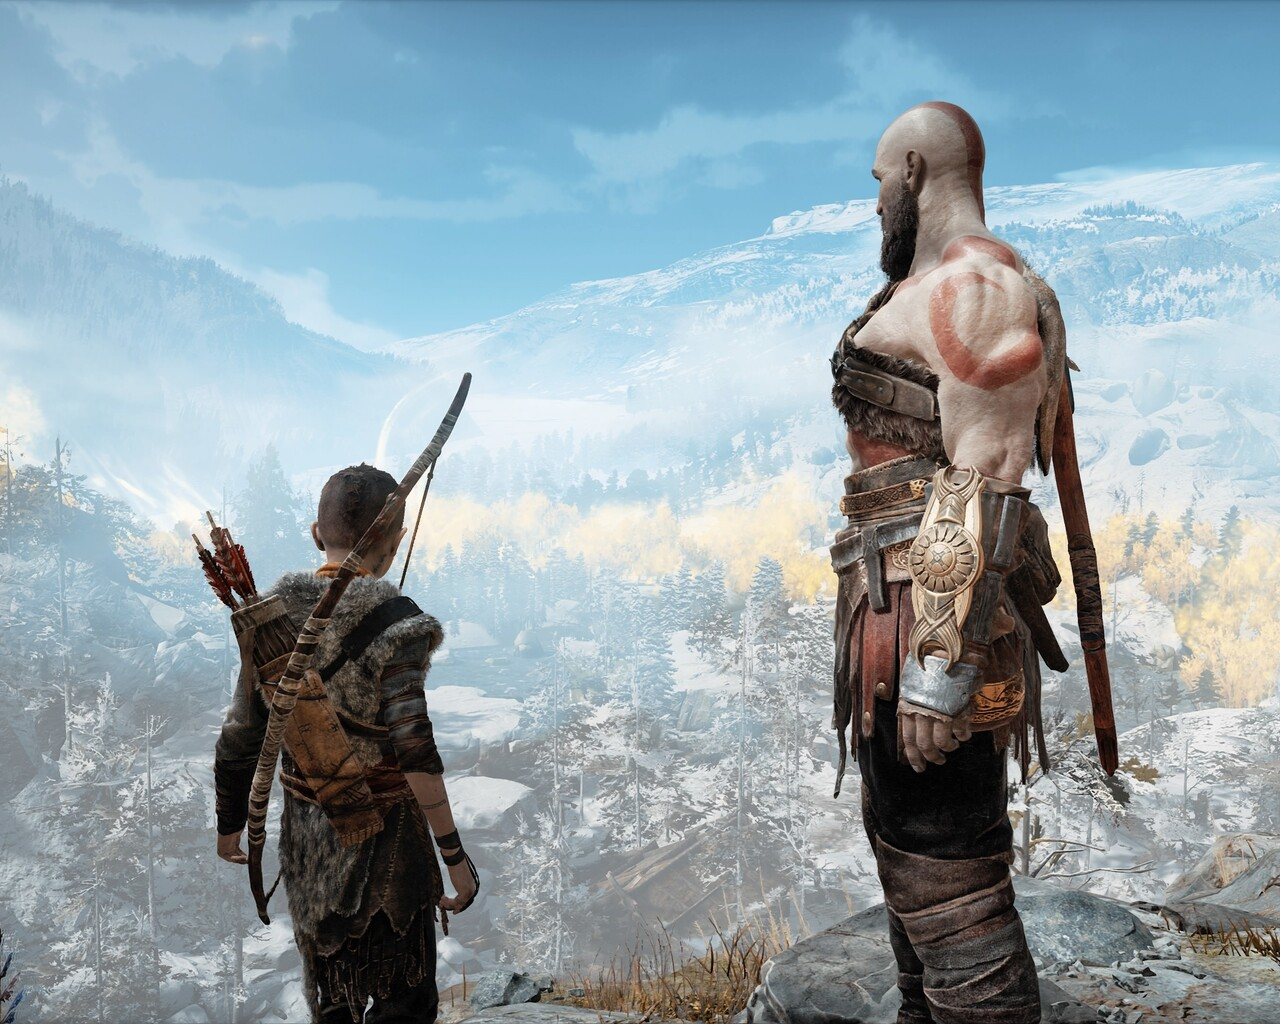 god-of-war-4-kratos-and-atreus-4k-oe.jpg